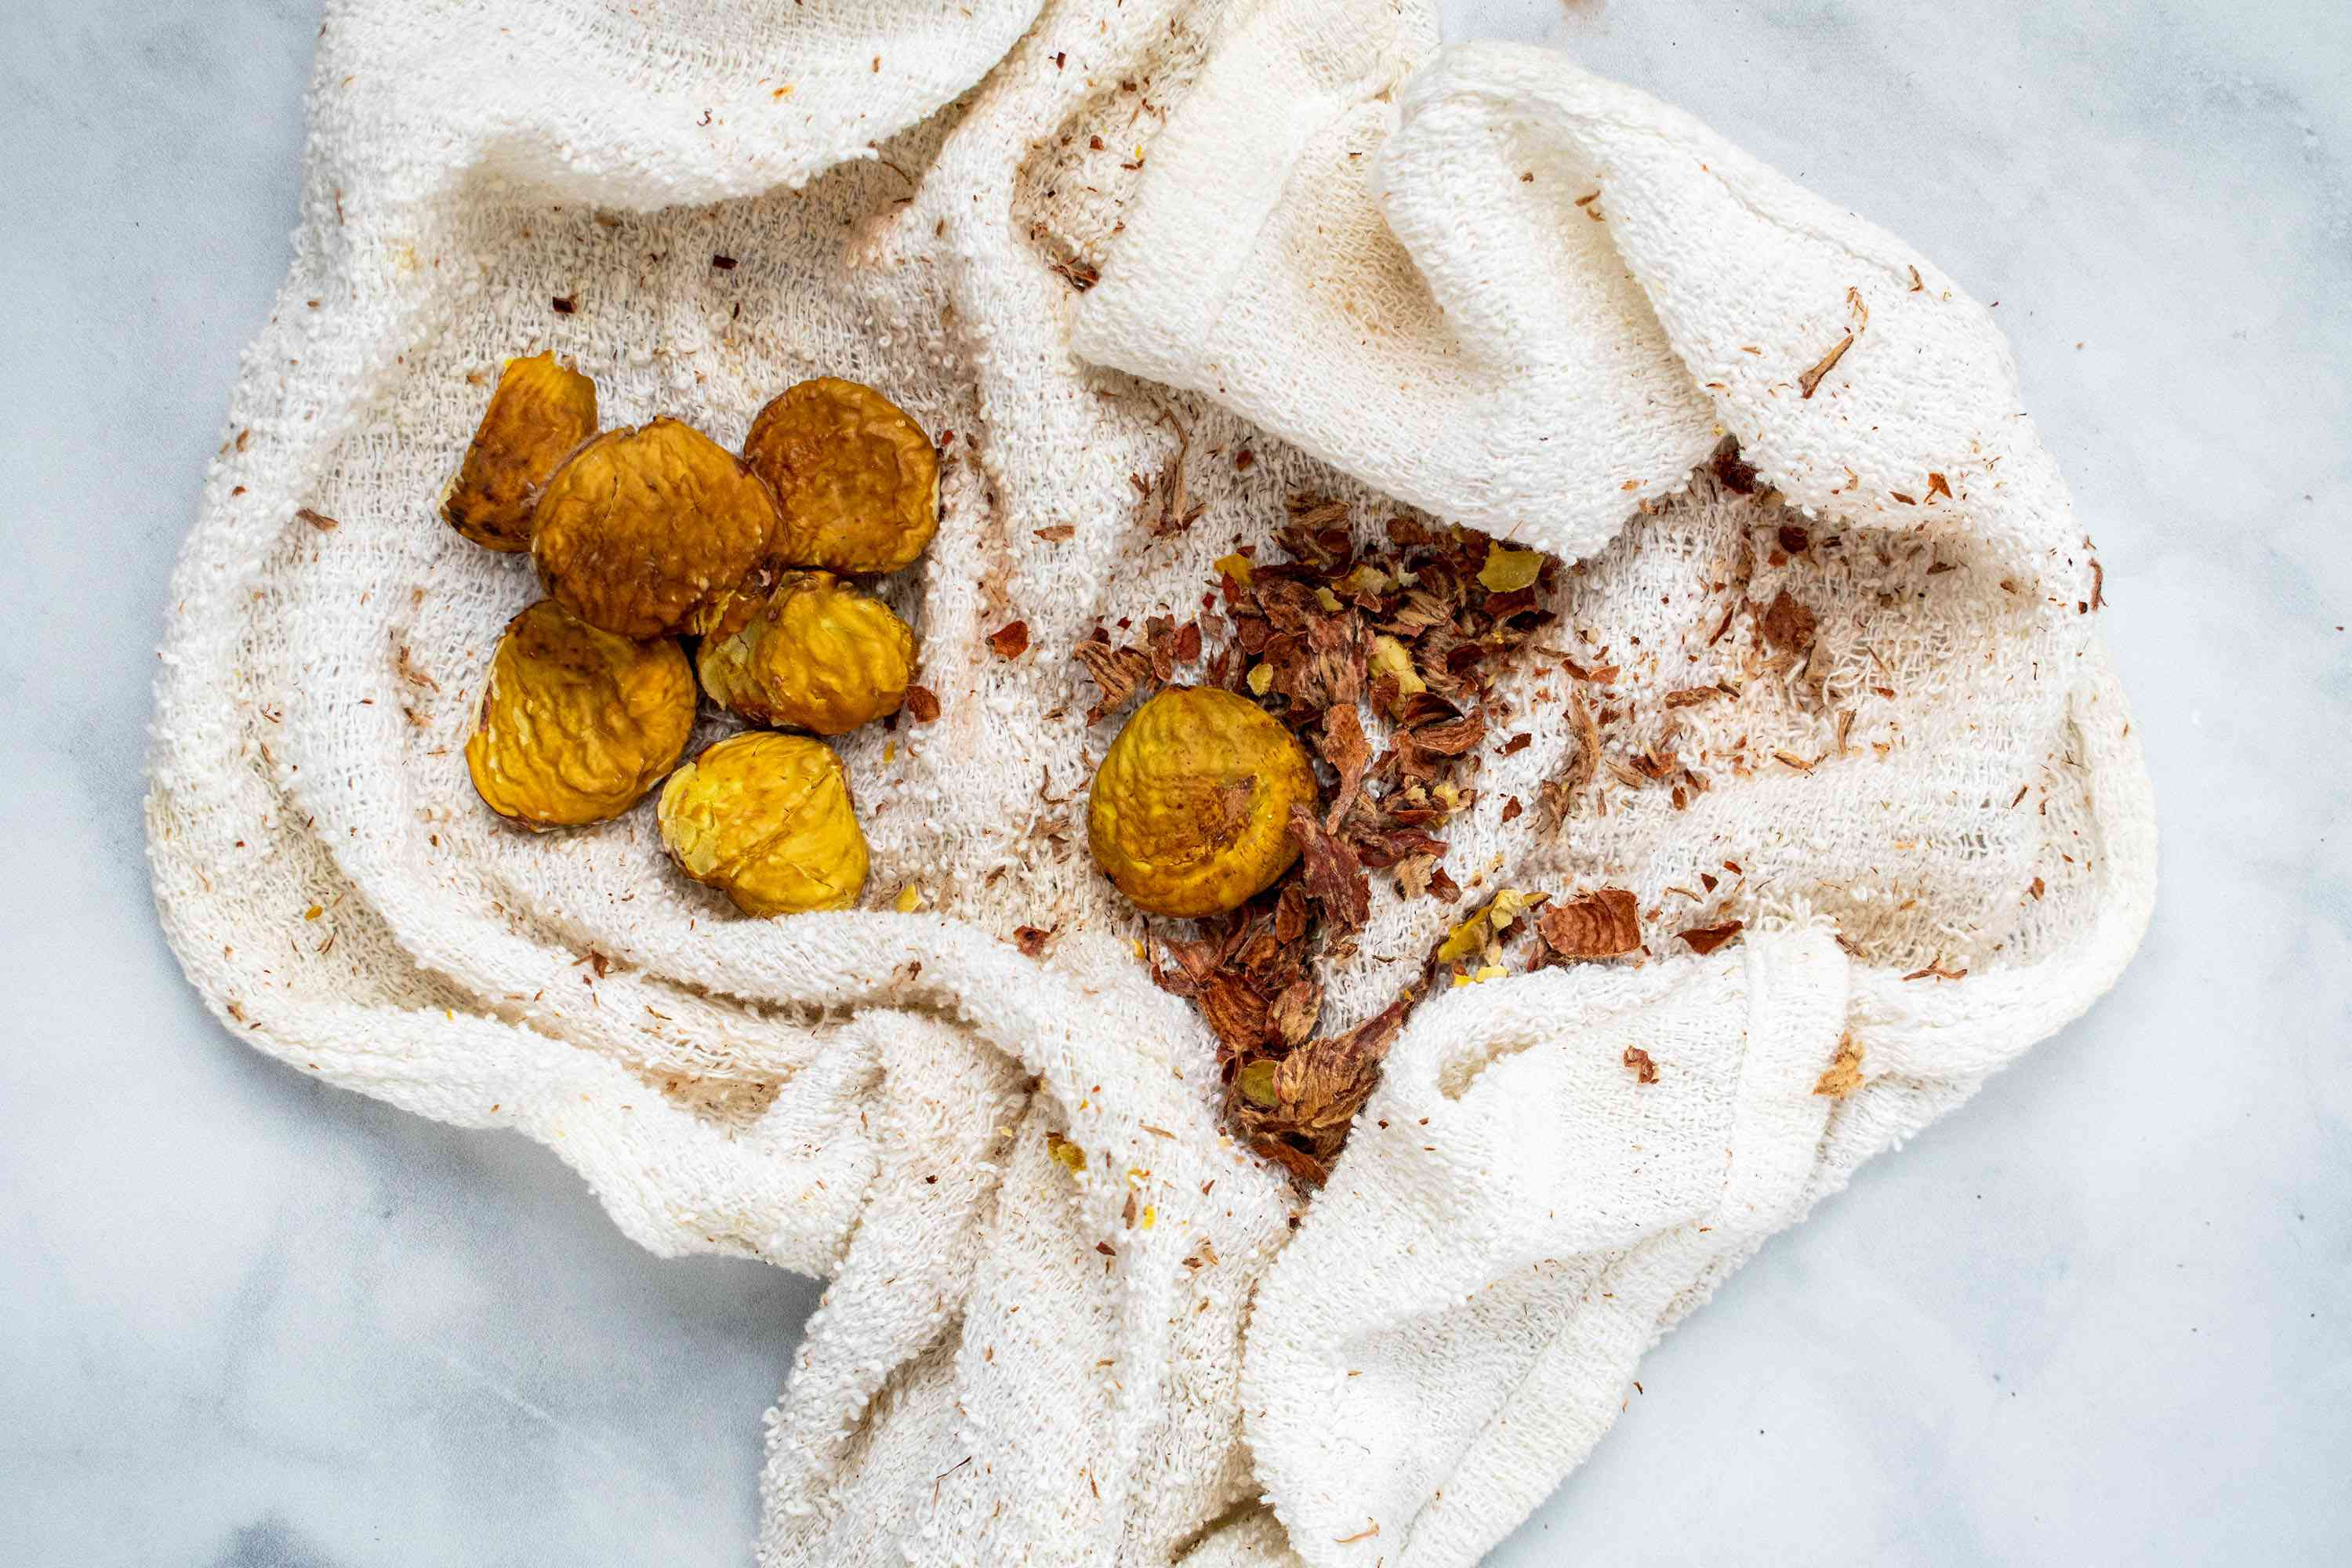 Rub the nuts into a hand towel to remove the inner skins